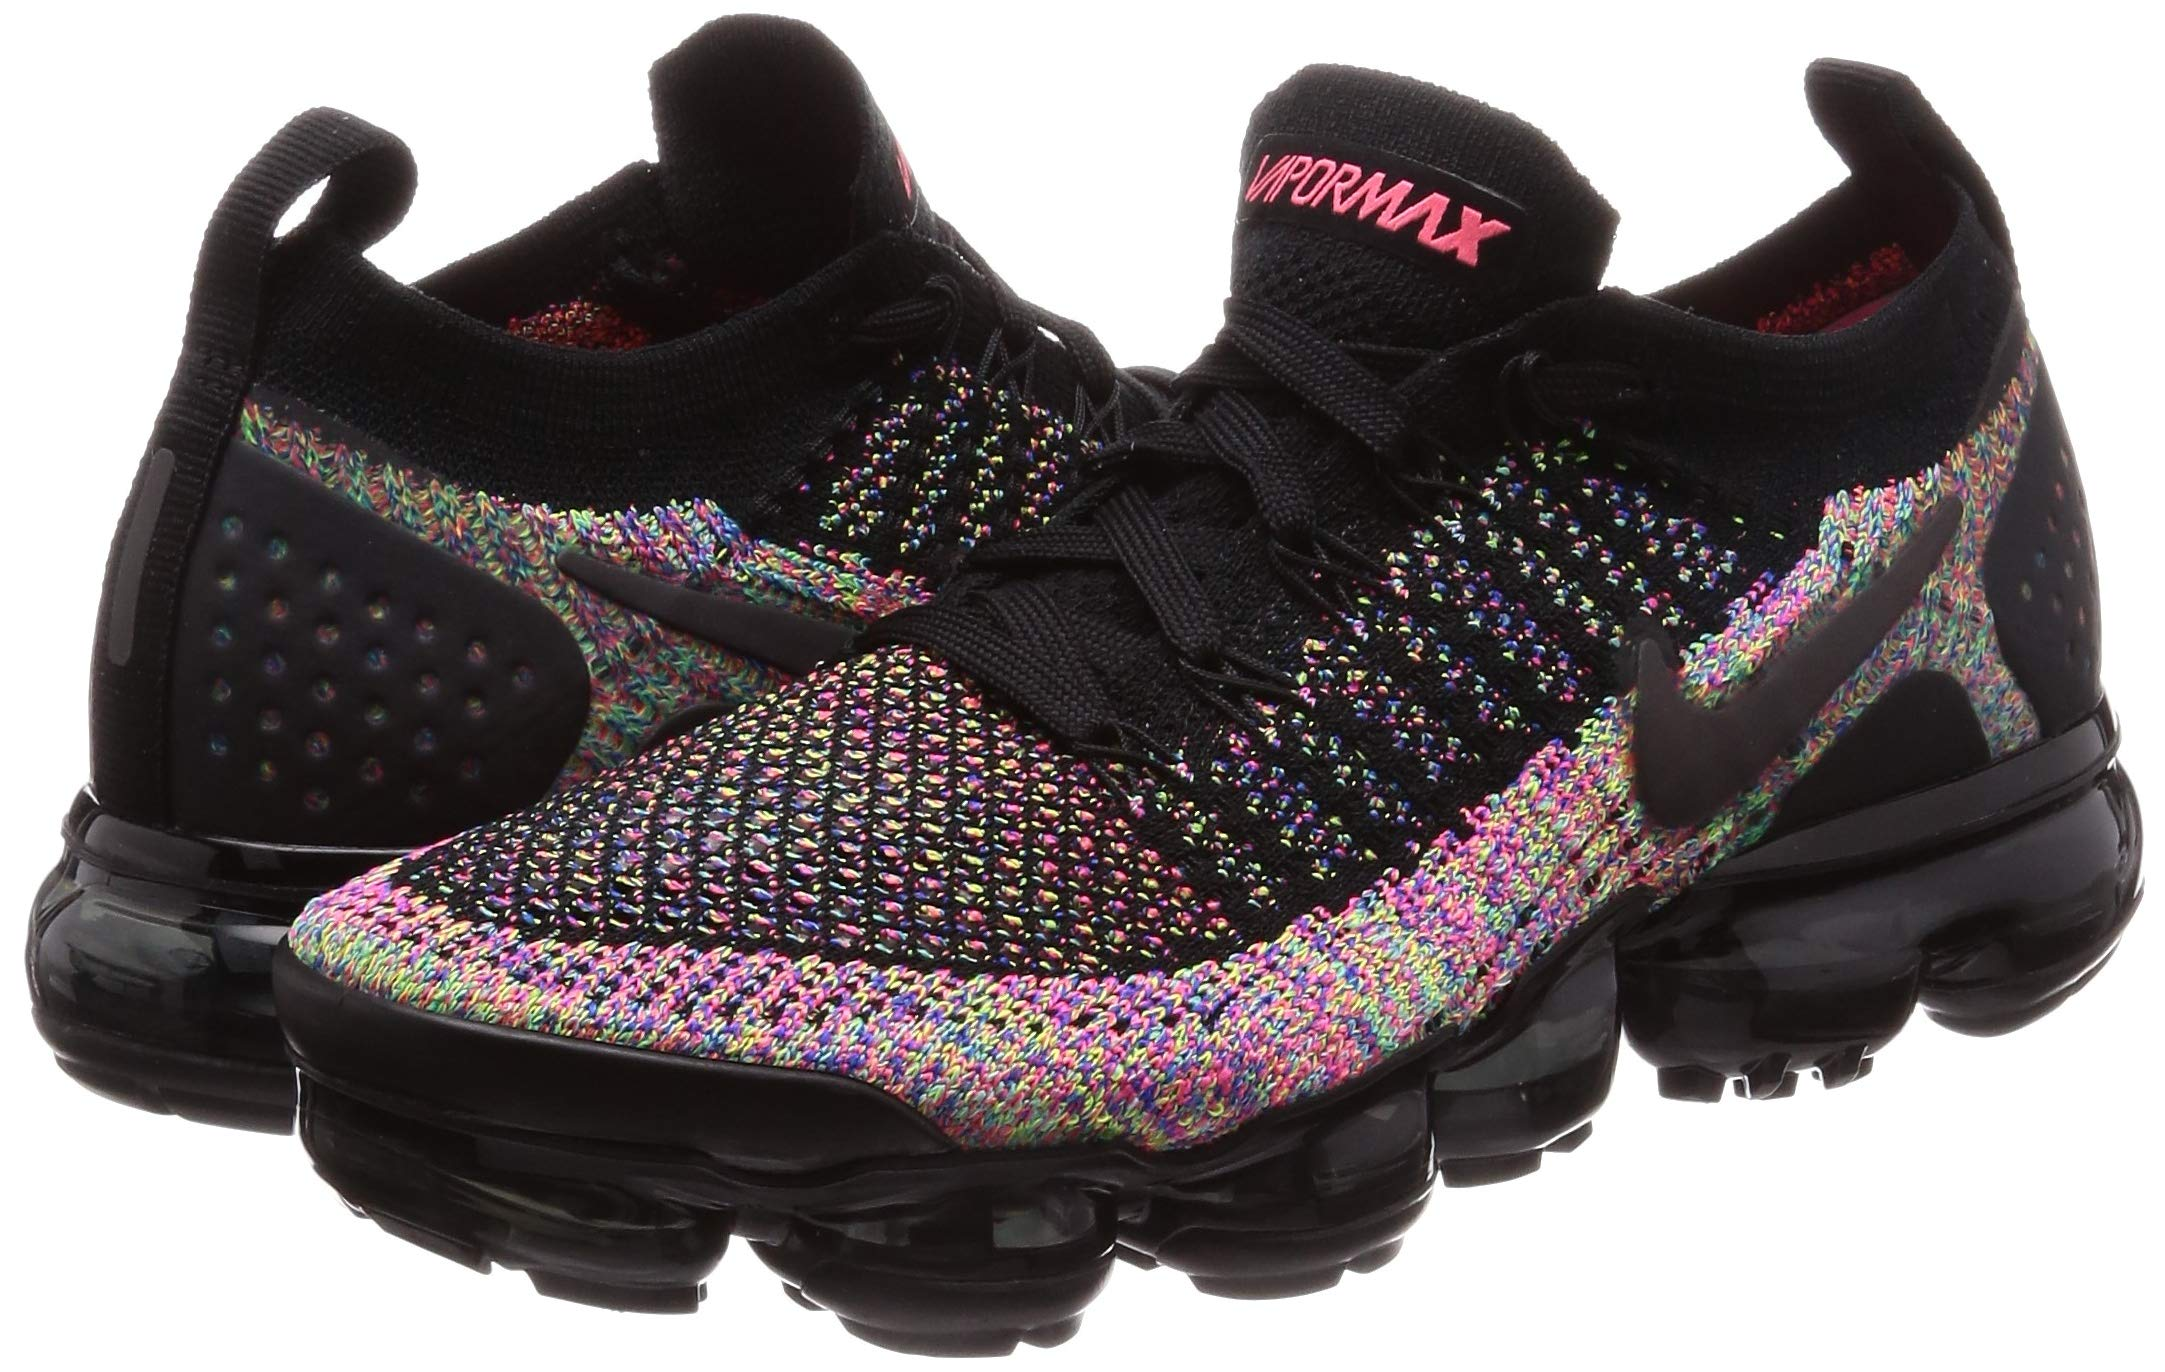 81DmdtybJBL - Nike Women's W Air Vapormax Flyknit 2 Track & Field Shoes